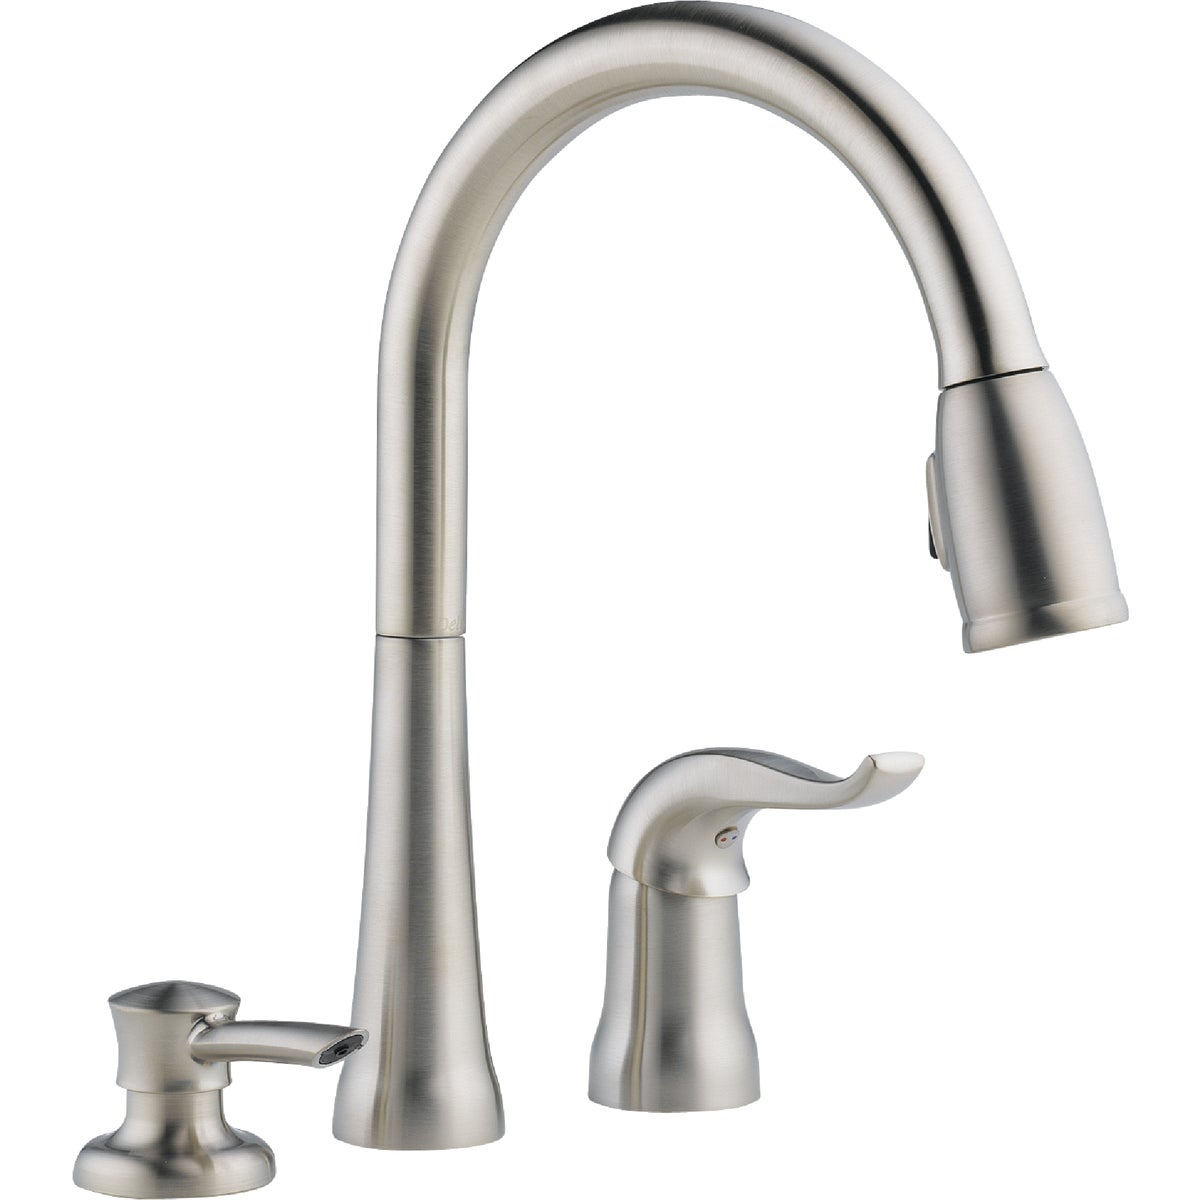 1H SS PD KITCHEN FAUCET - 16970-SSSD-DST by Delta Faucet Co